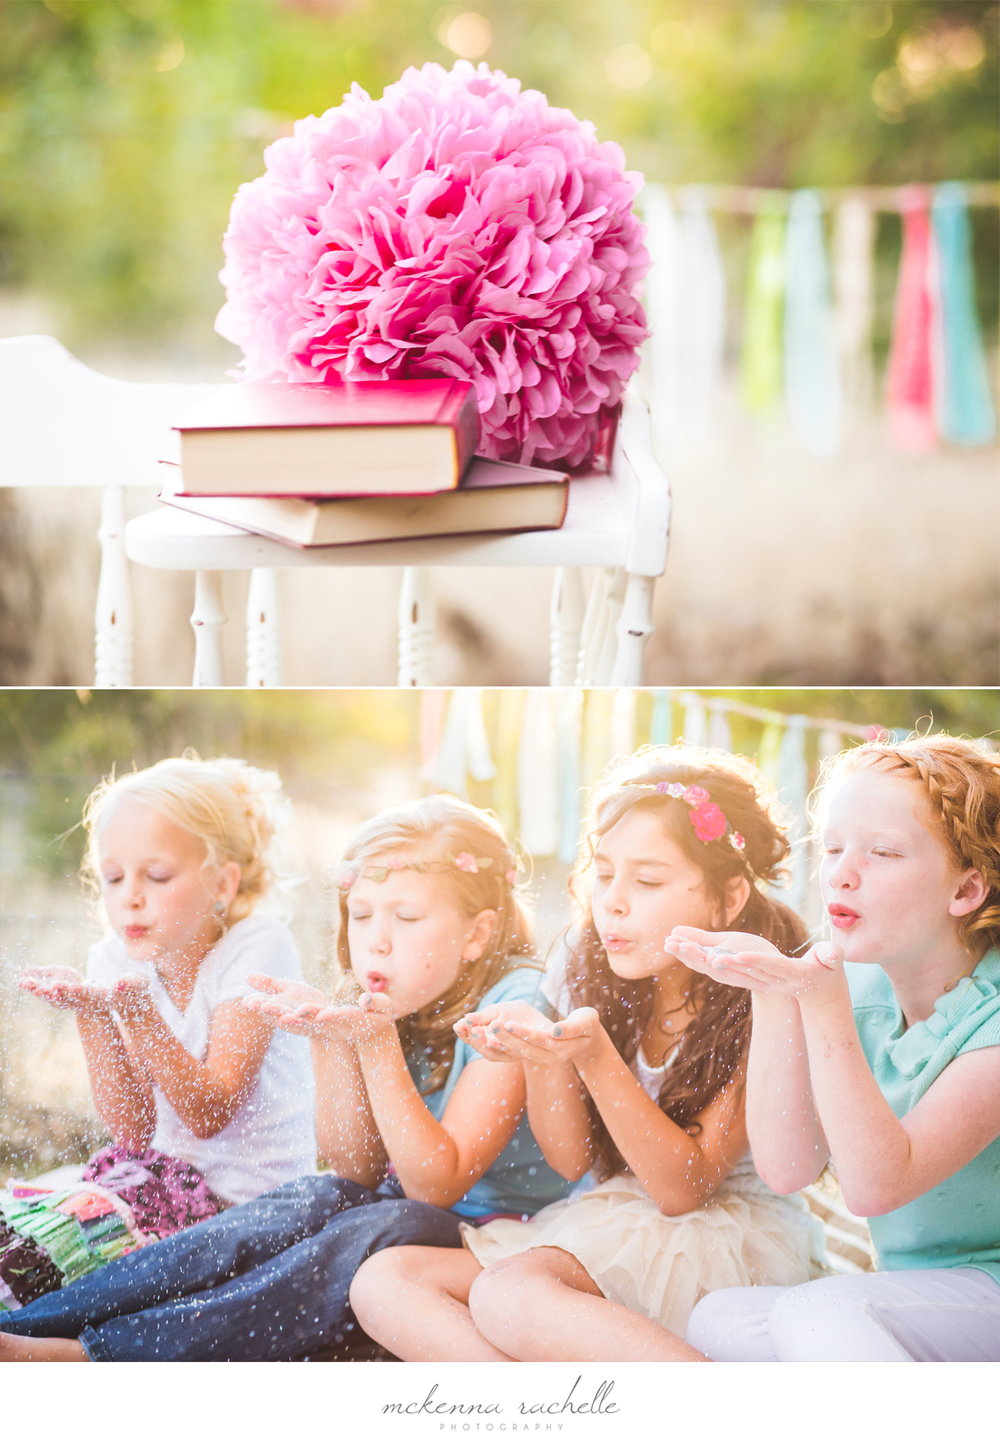 Boise Photographer McKenna Rachelle Photography Photographs Girls Birthday Party